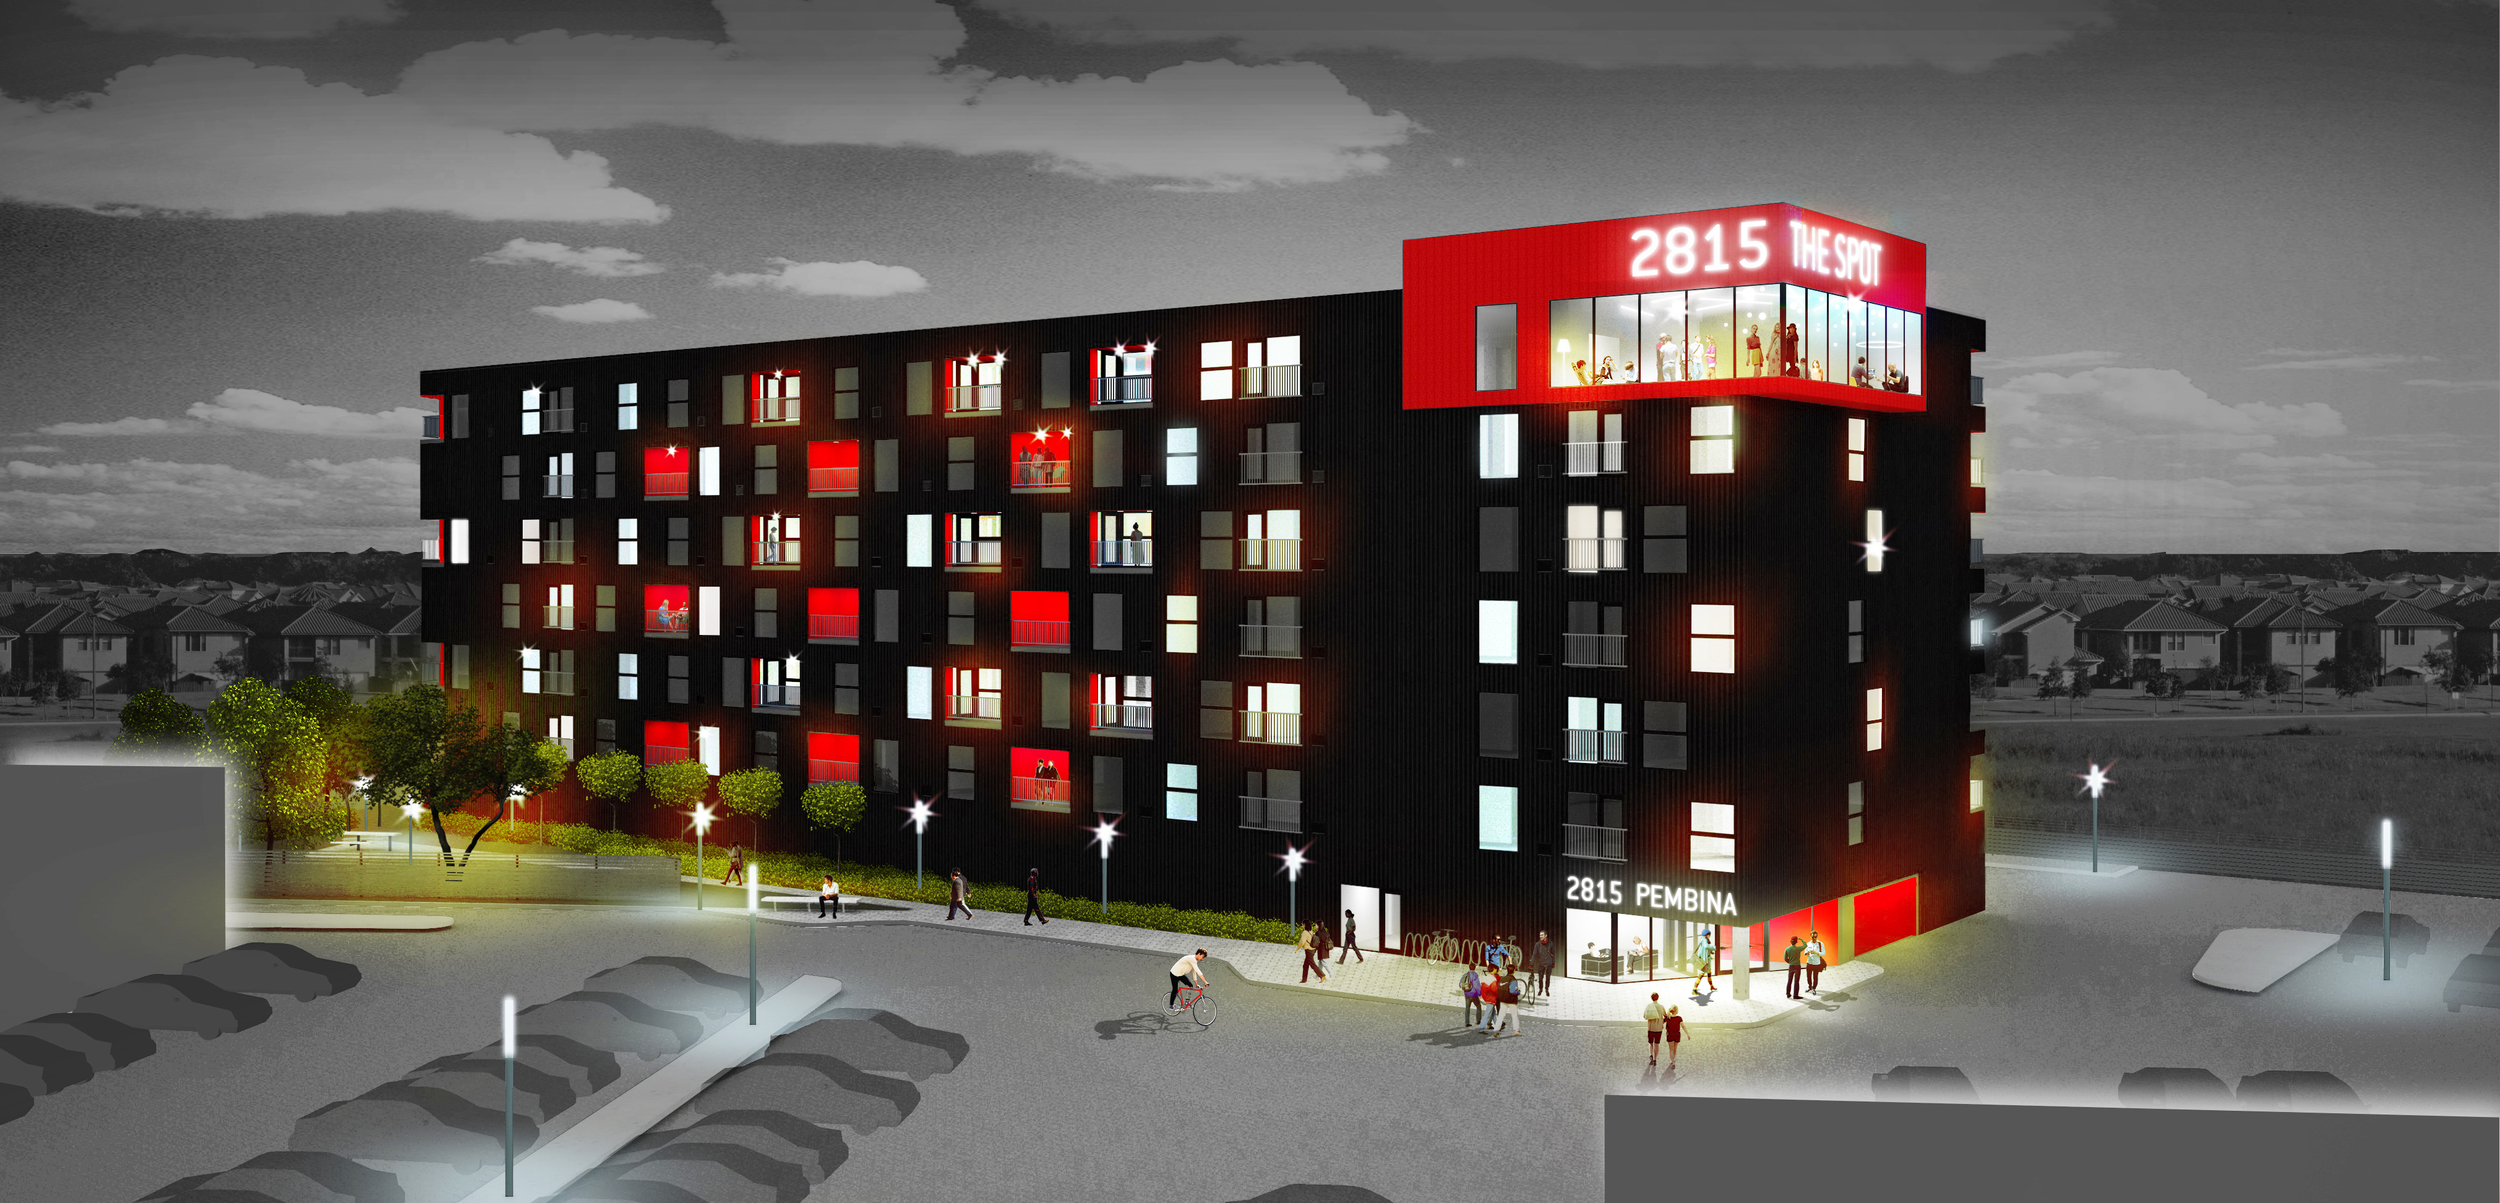 2815 Pembina Night Rendering.jpg